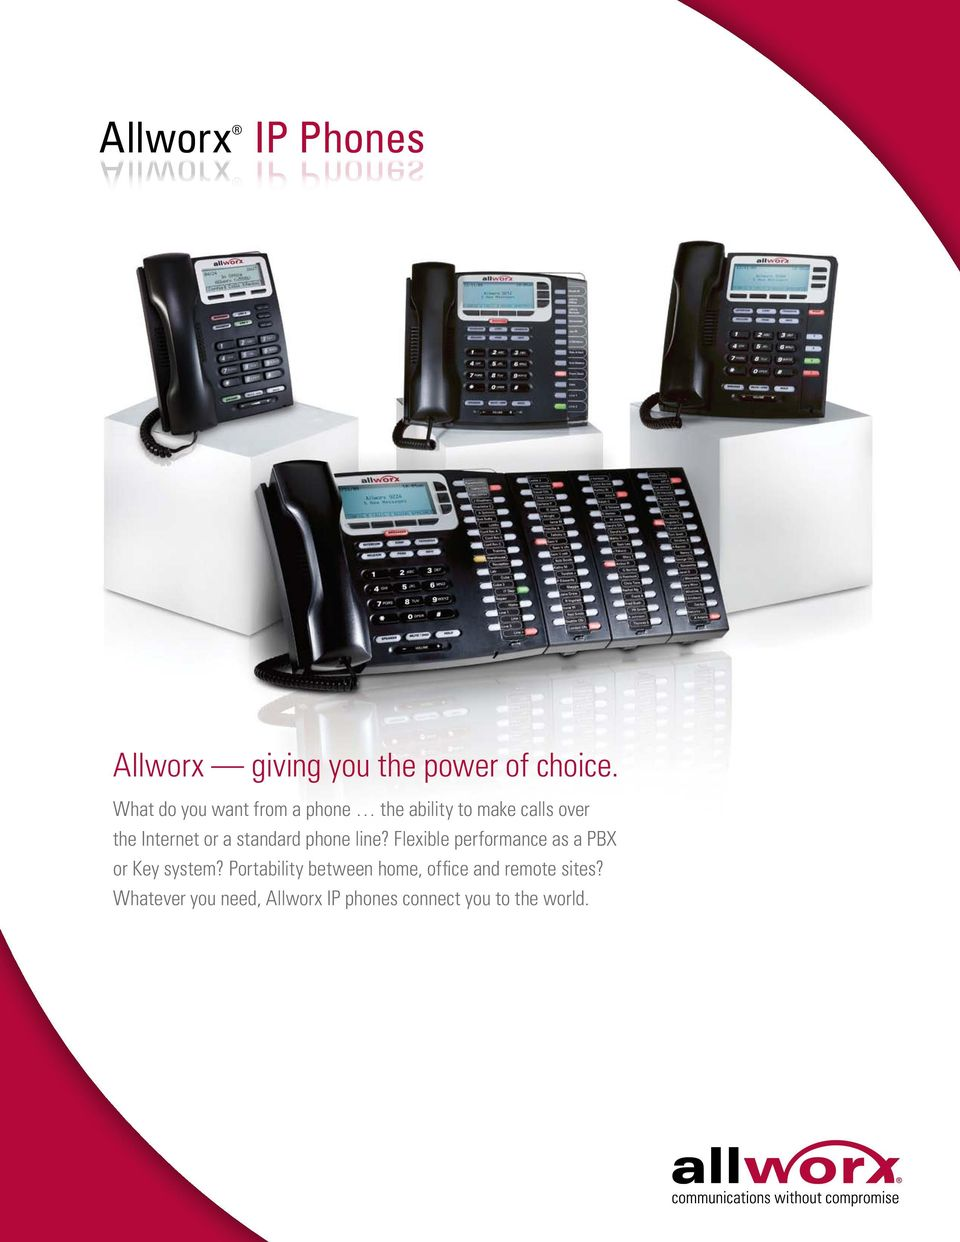 standard phone line? Flexible performance as a PBX or Key system?